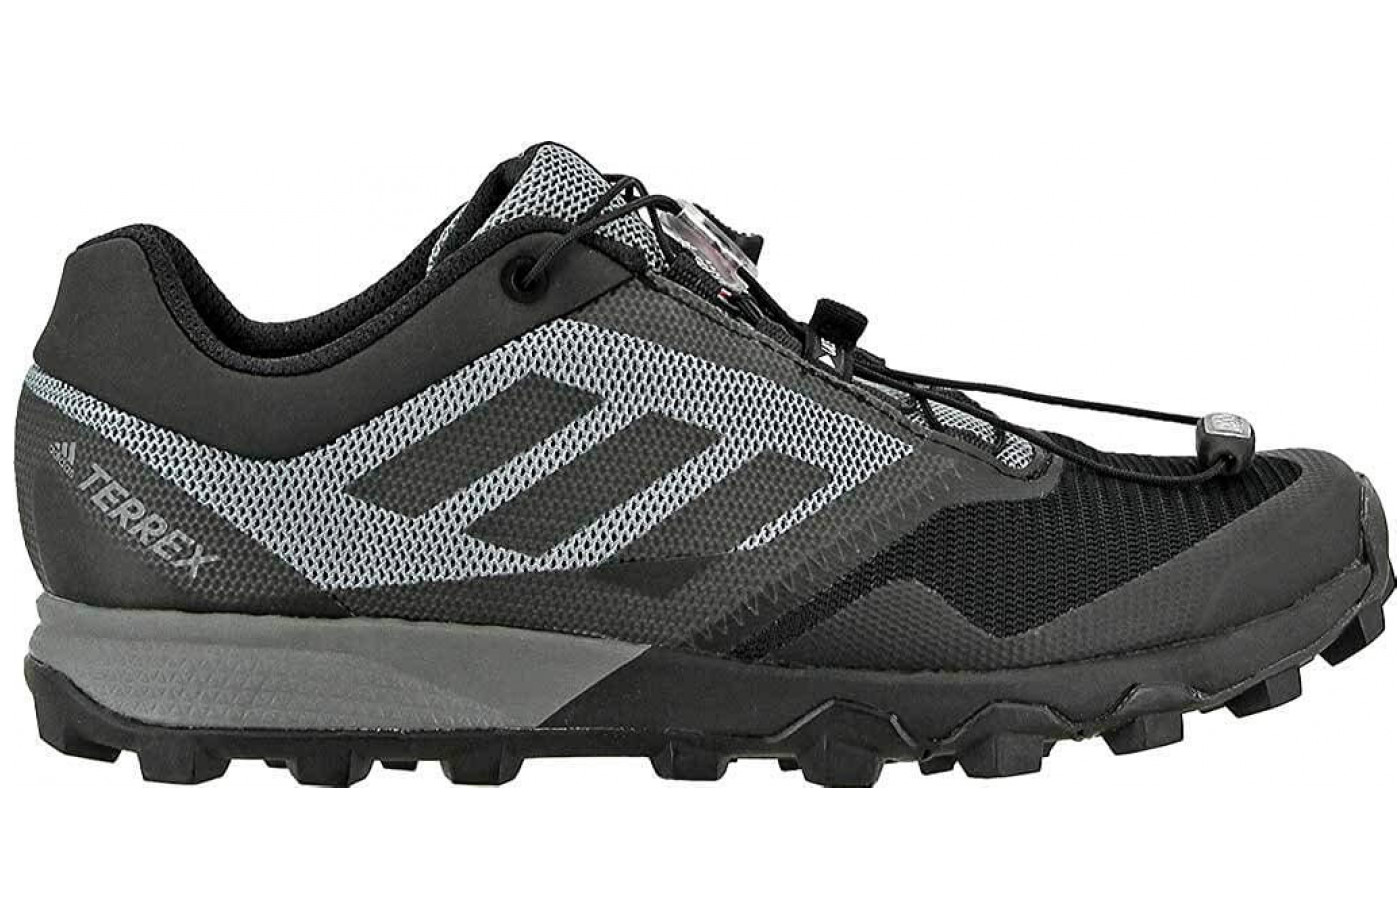 premium selection discount sale fresh styles Adidas Terrex Trailmaker Fully Reviewed